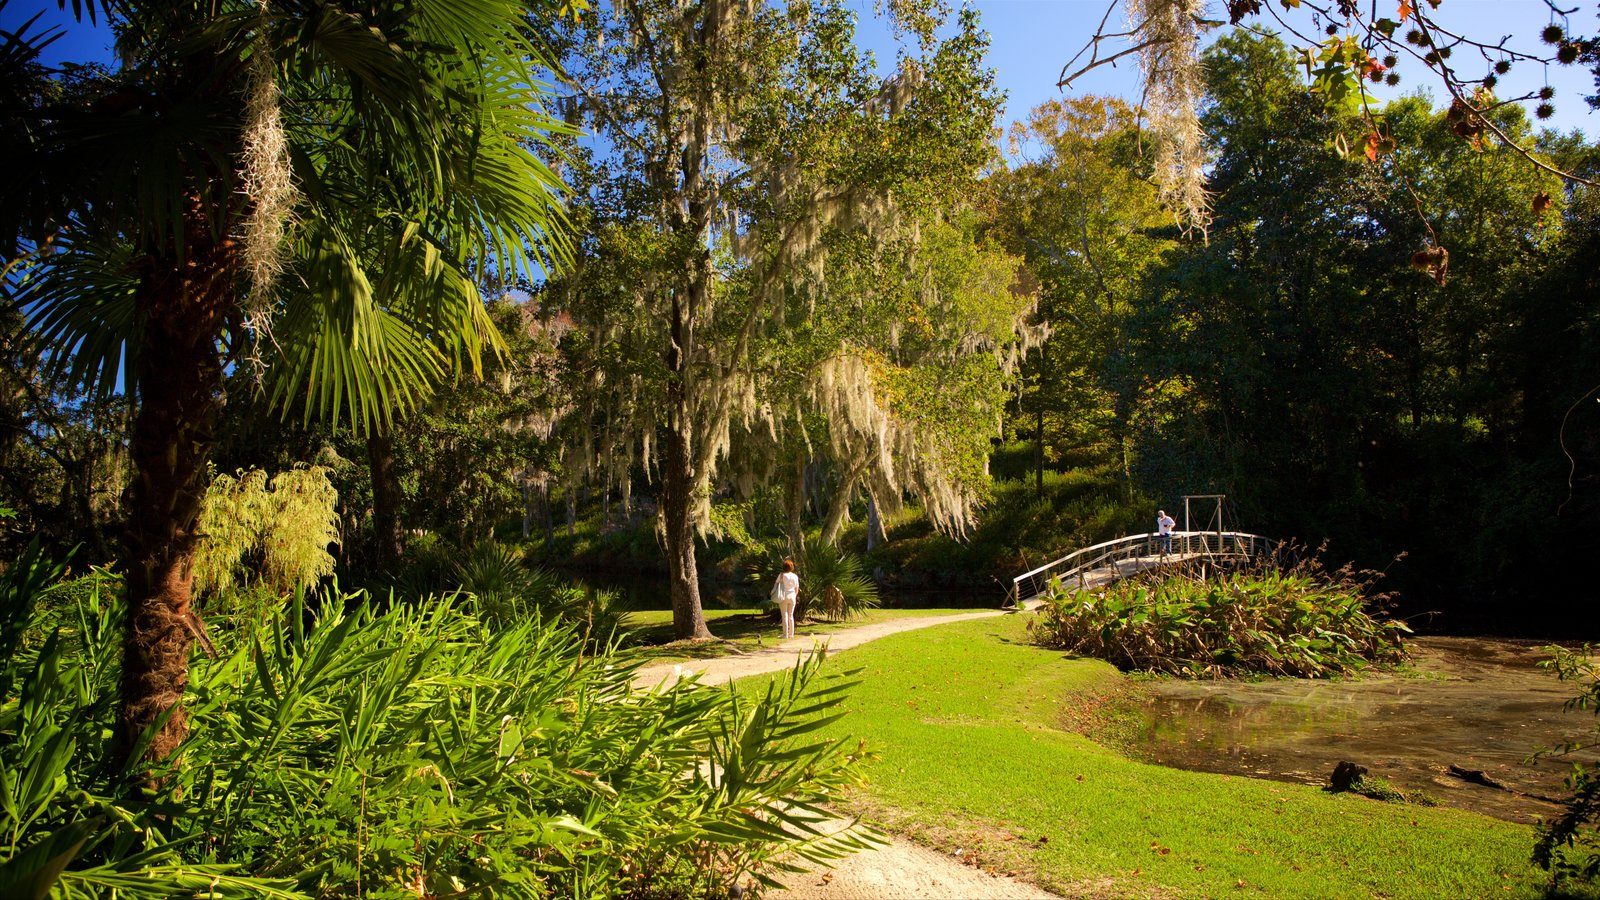 Middleton Place Pictures: View Photos & Images of Middleton Place